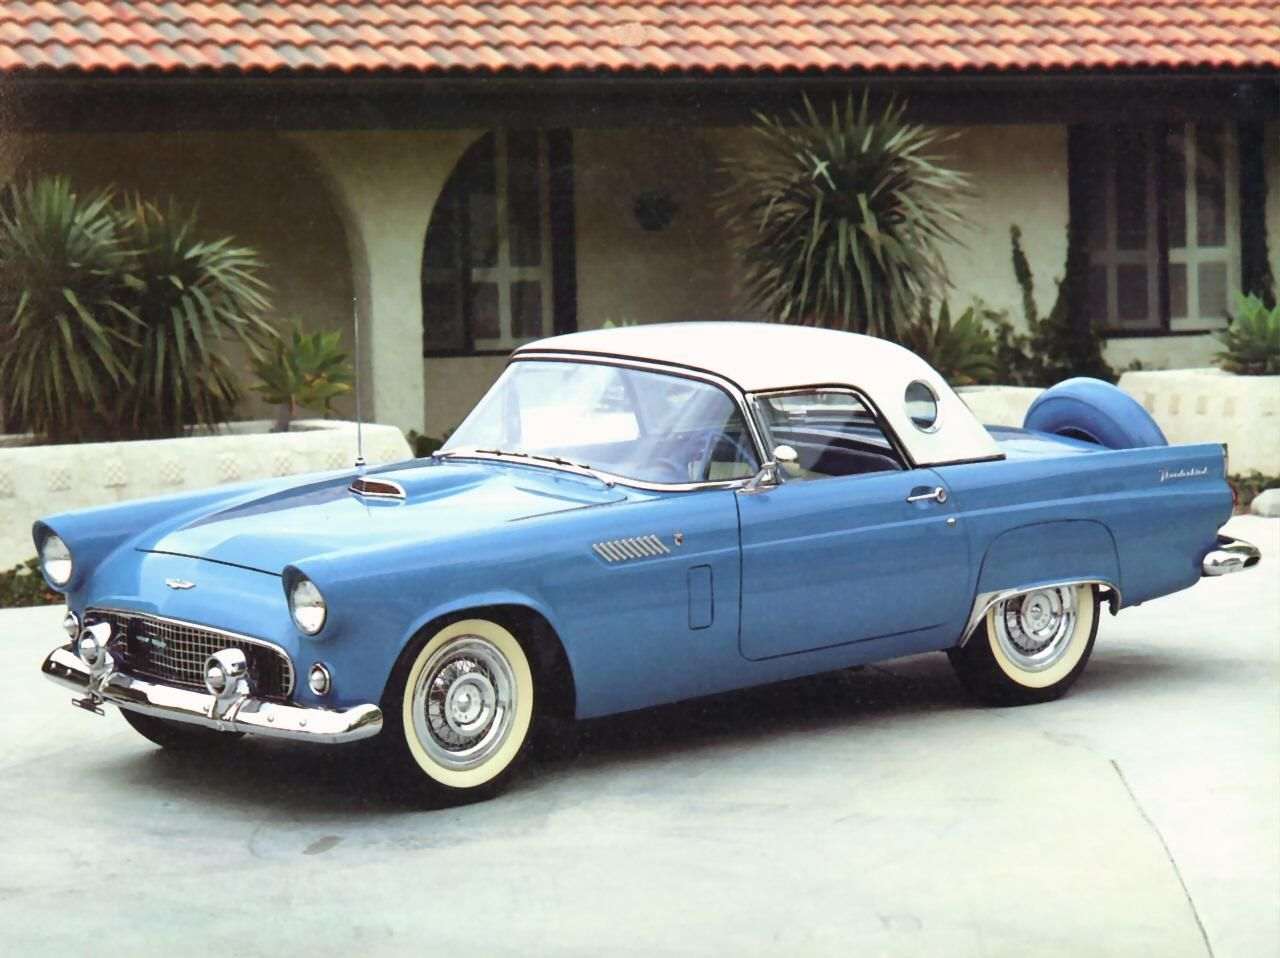 Cars 1956 ford thunderbird roadster with port hole hardtop blue fvl